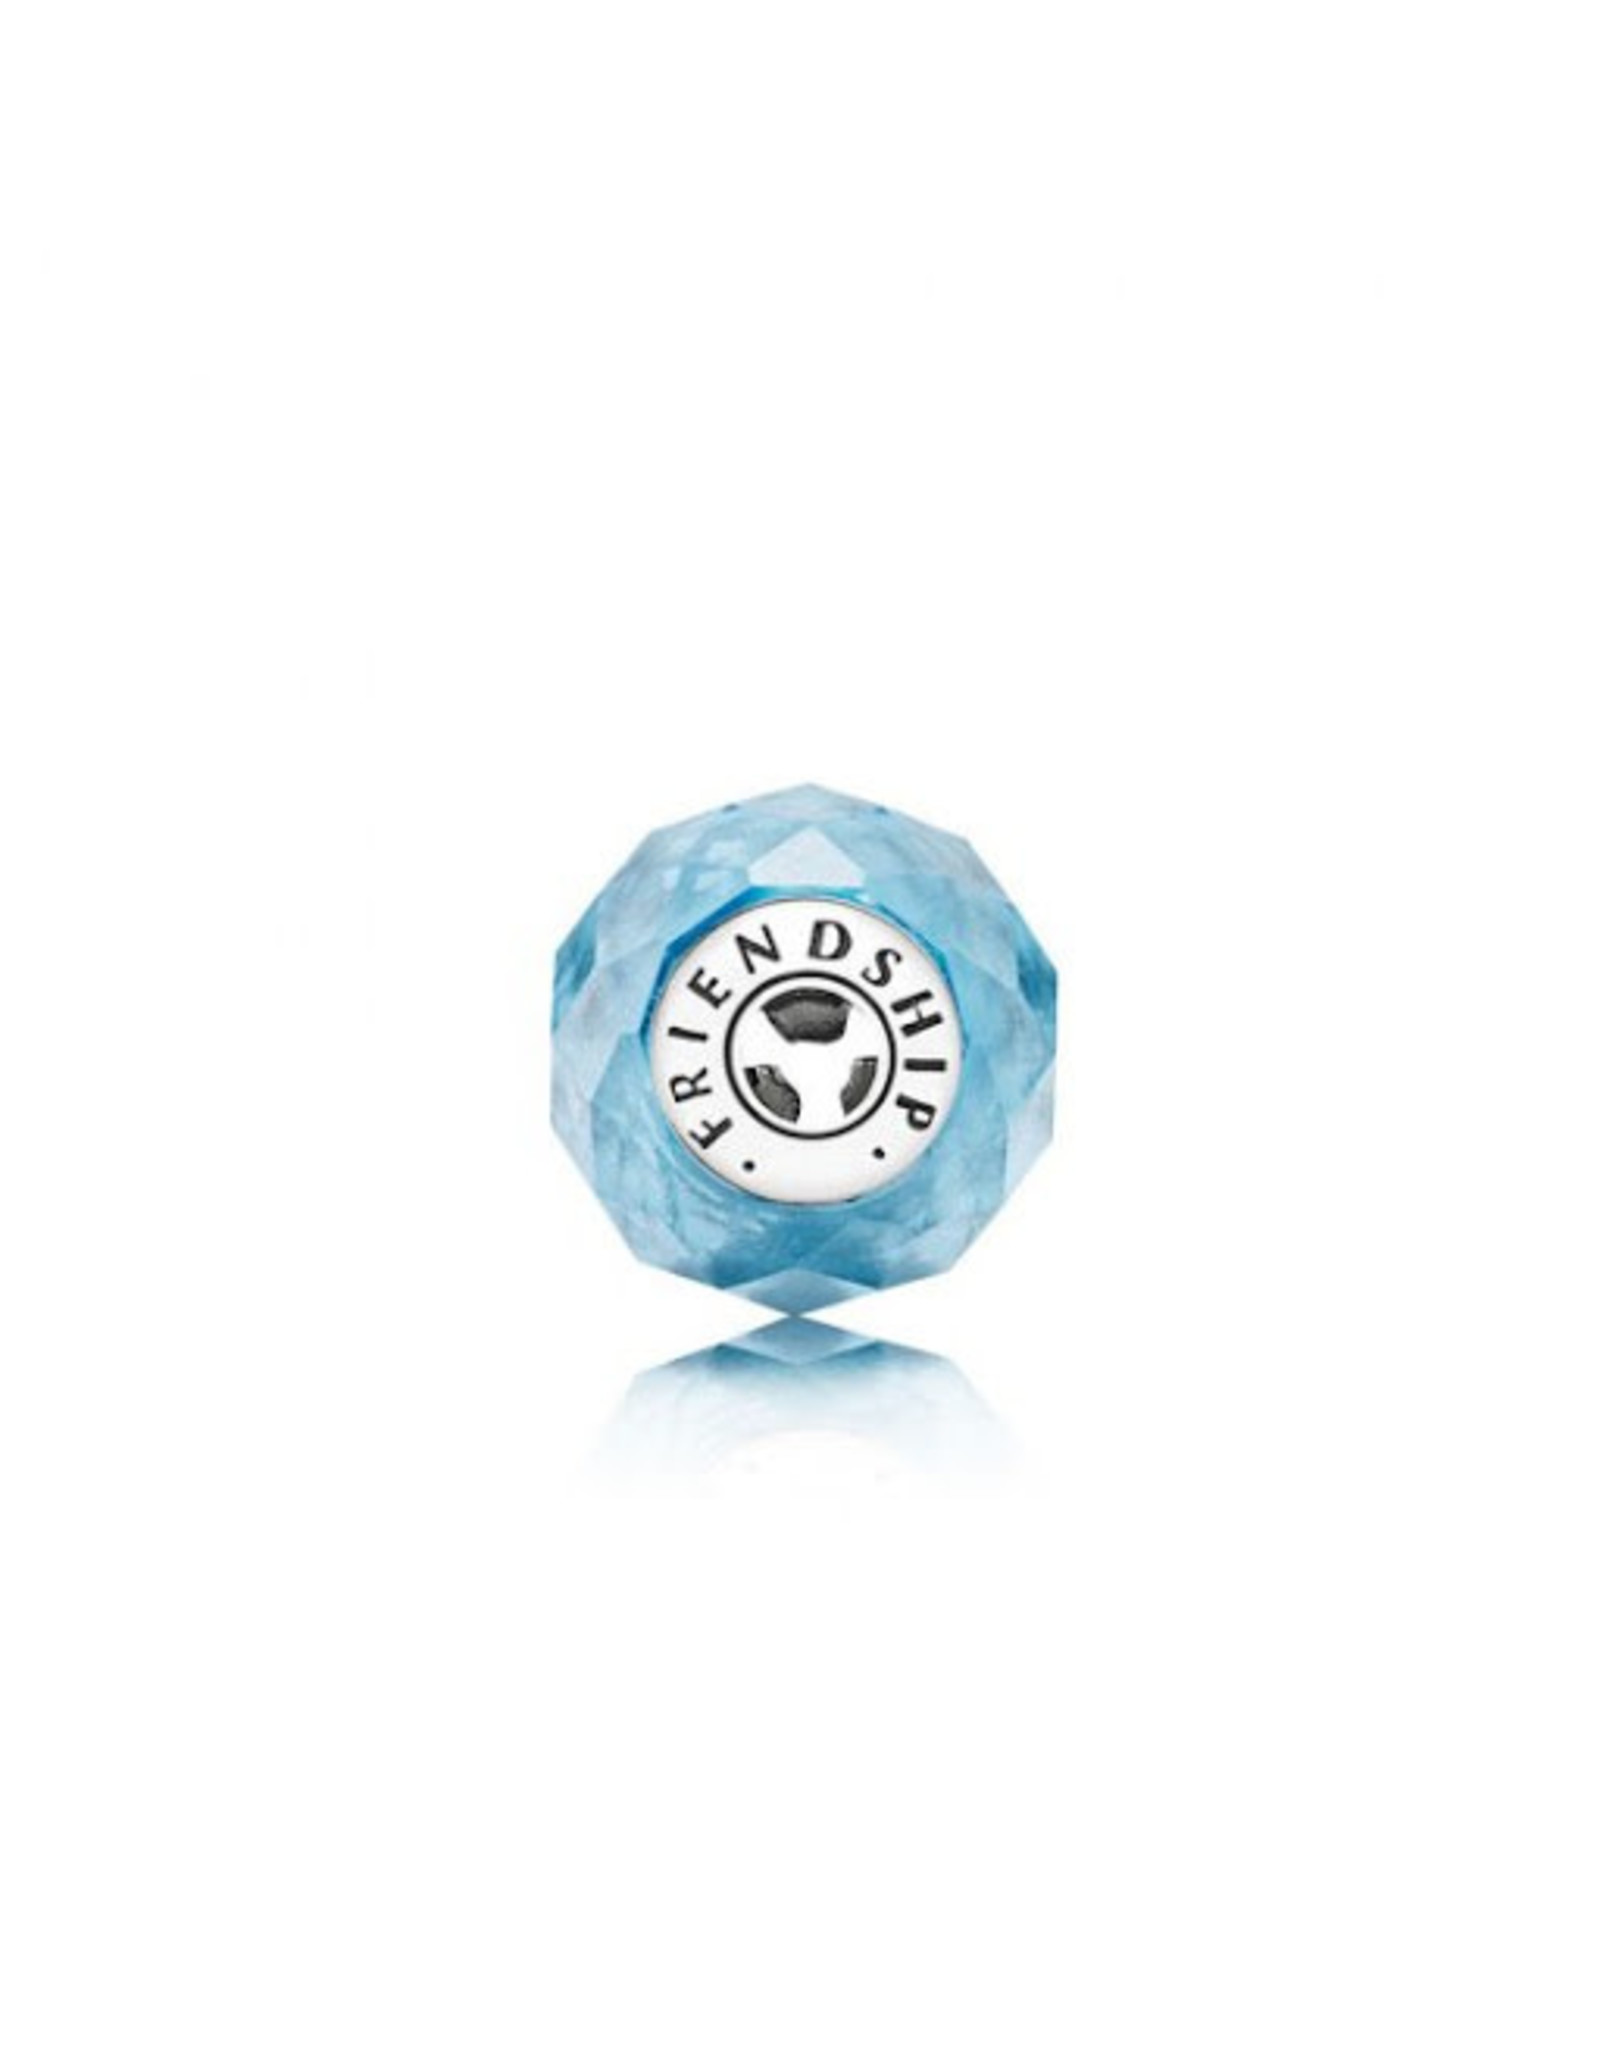 Pandora Pandora Essence Charm,Friendship, Sky-Blue Crystal